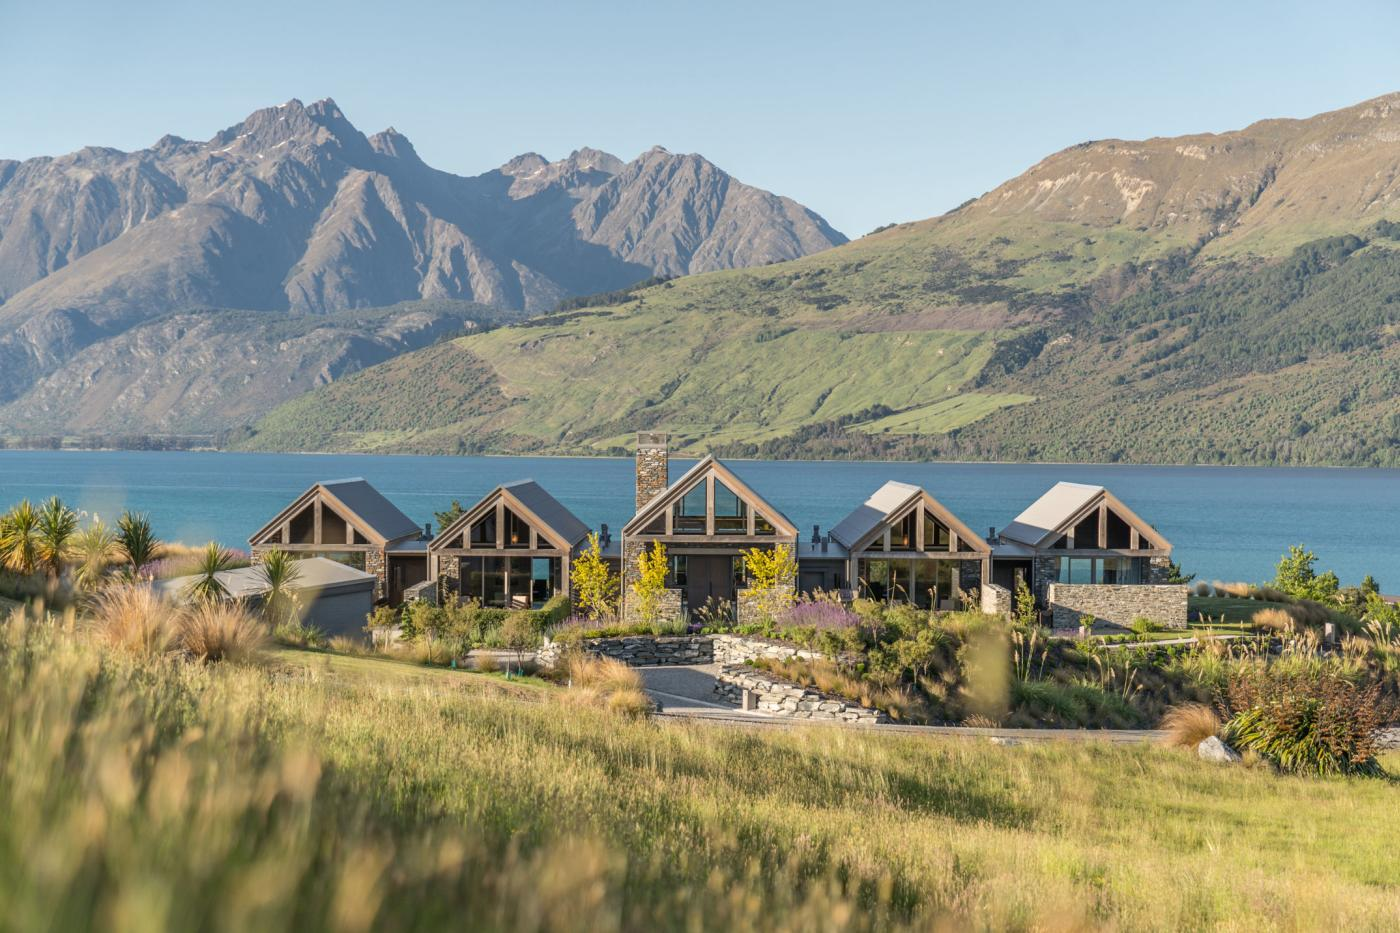 Blanket Bay Villas with mountain and lake backdrop